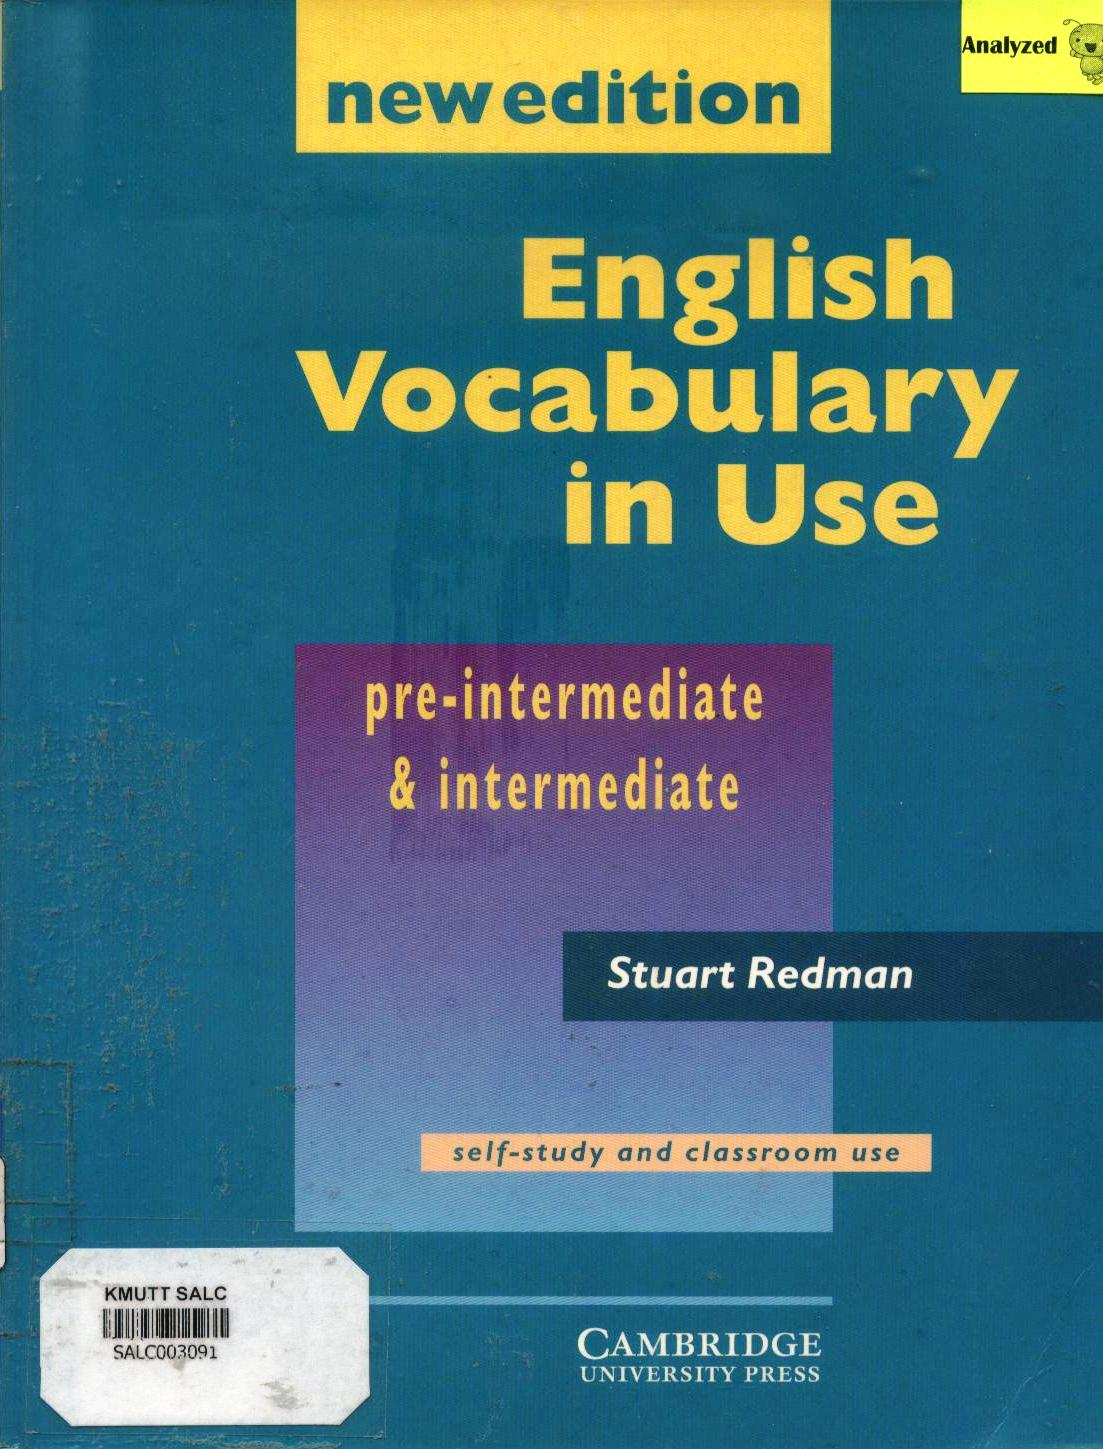 English Vocabulary in Use 1: New Edition